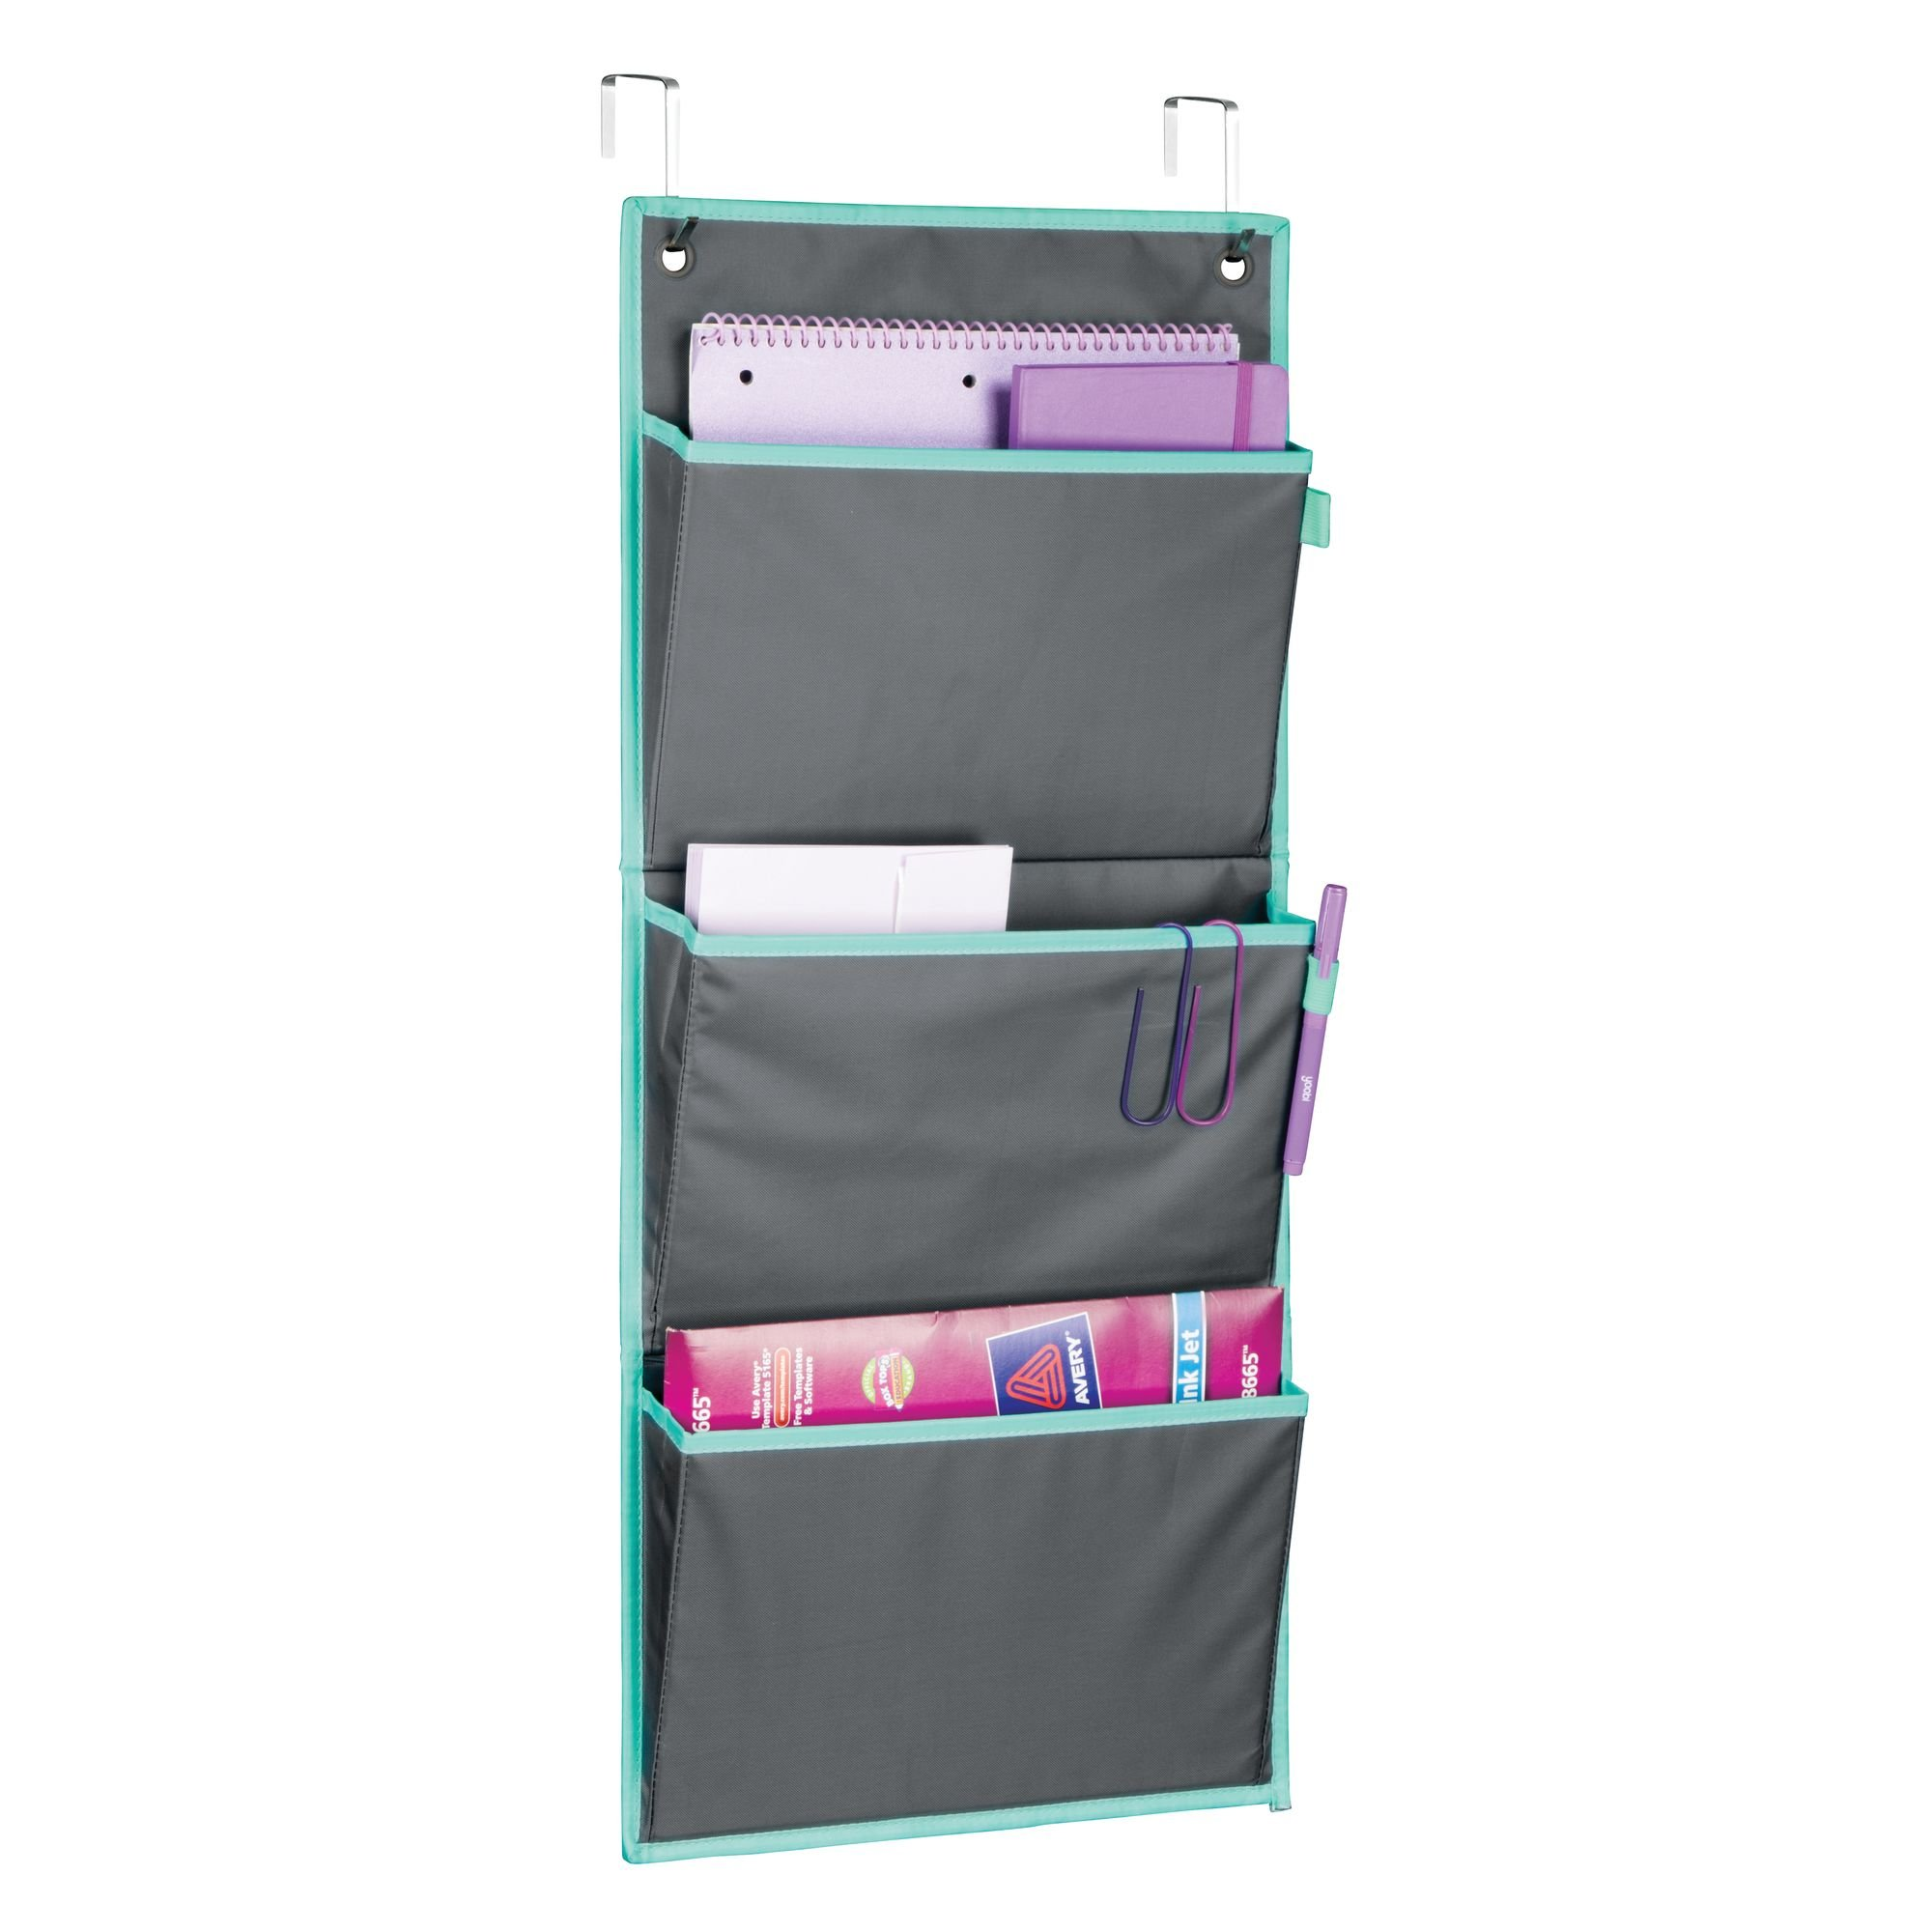 mDesign Soft Fabric Over the Door Hanging Storage Organizer with 3 Large Pockets for Home Office, Cubicle – Gray/Teal Blue